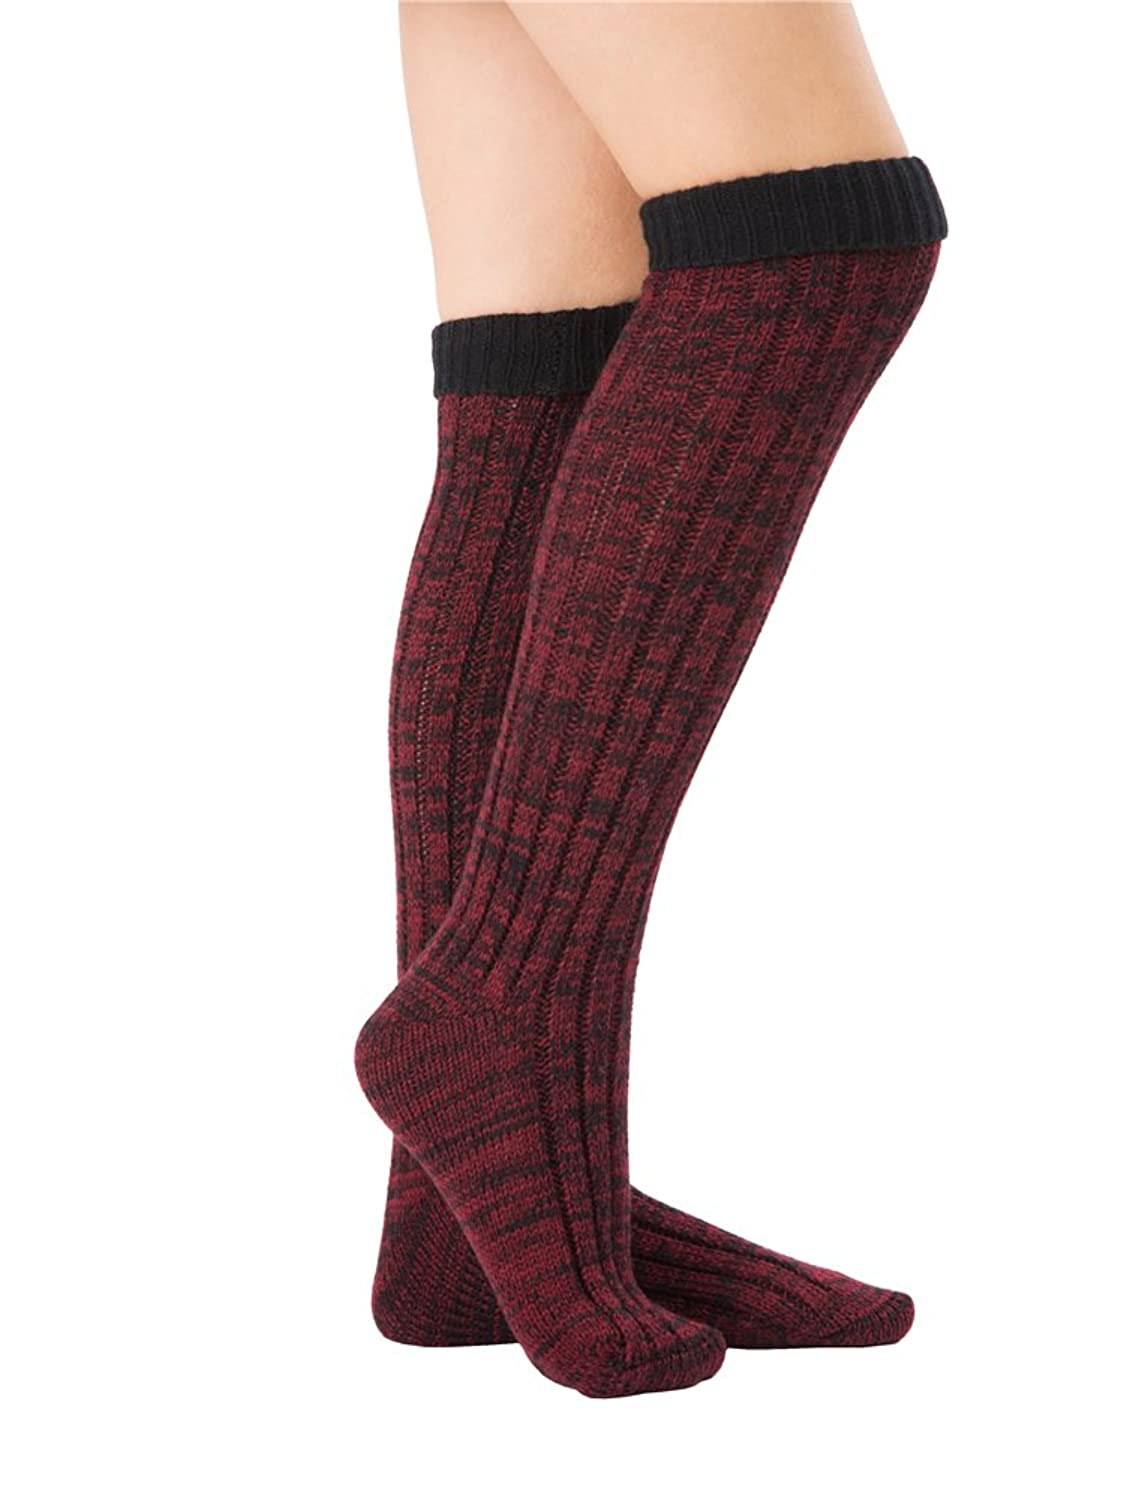 SherryDC Women's Ribbed Knit Knee High Boot Socks Winter Long Leg Warmers Stockings